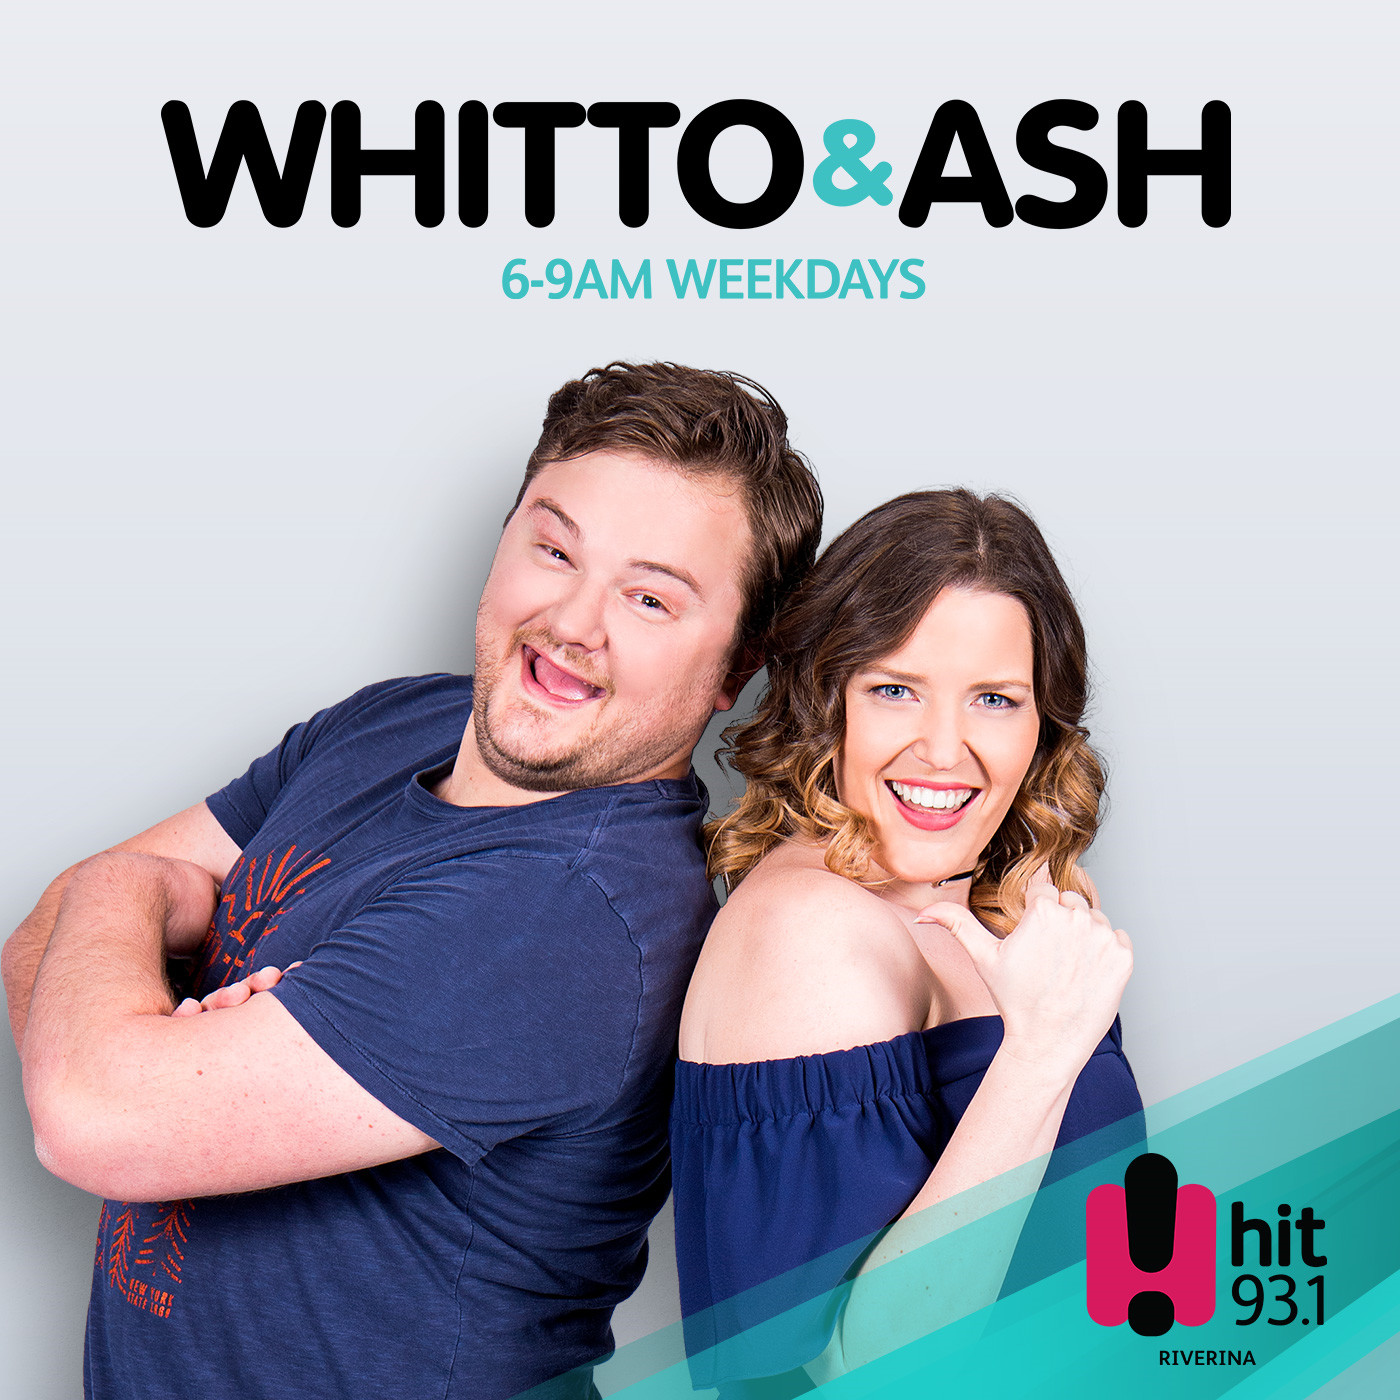 Whitto and Ash - hit93.1 Riverina